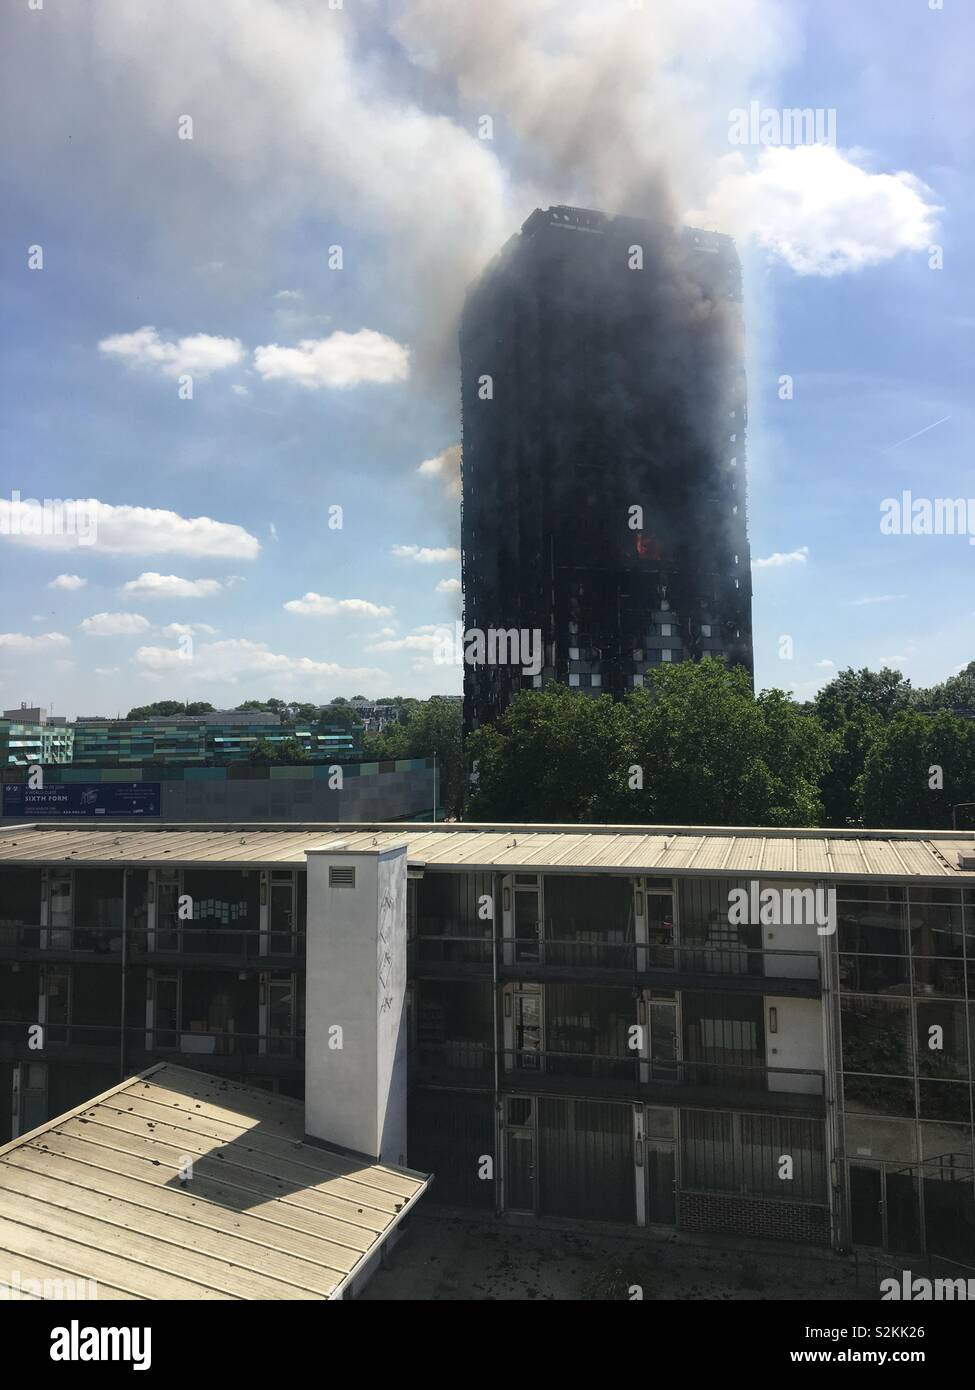 Grenfell Tower - Stock Image